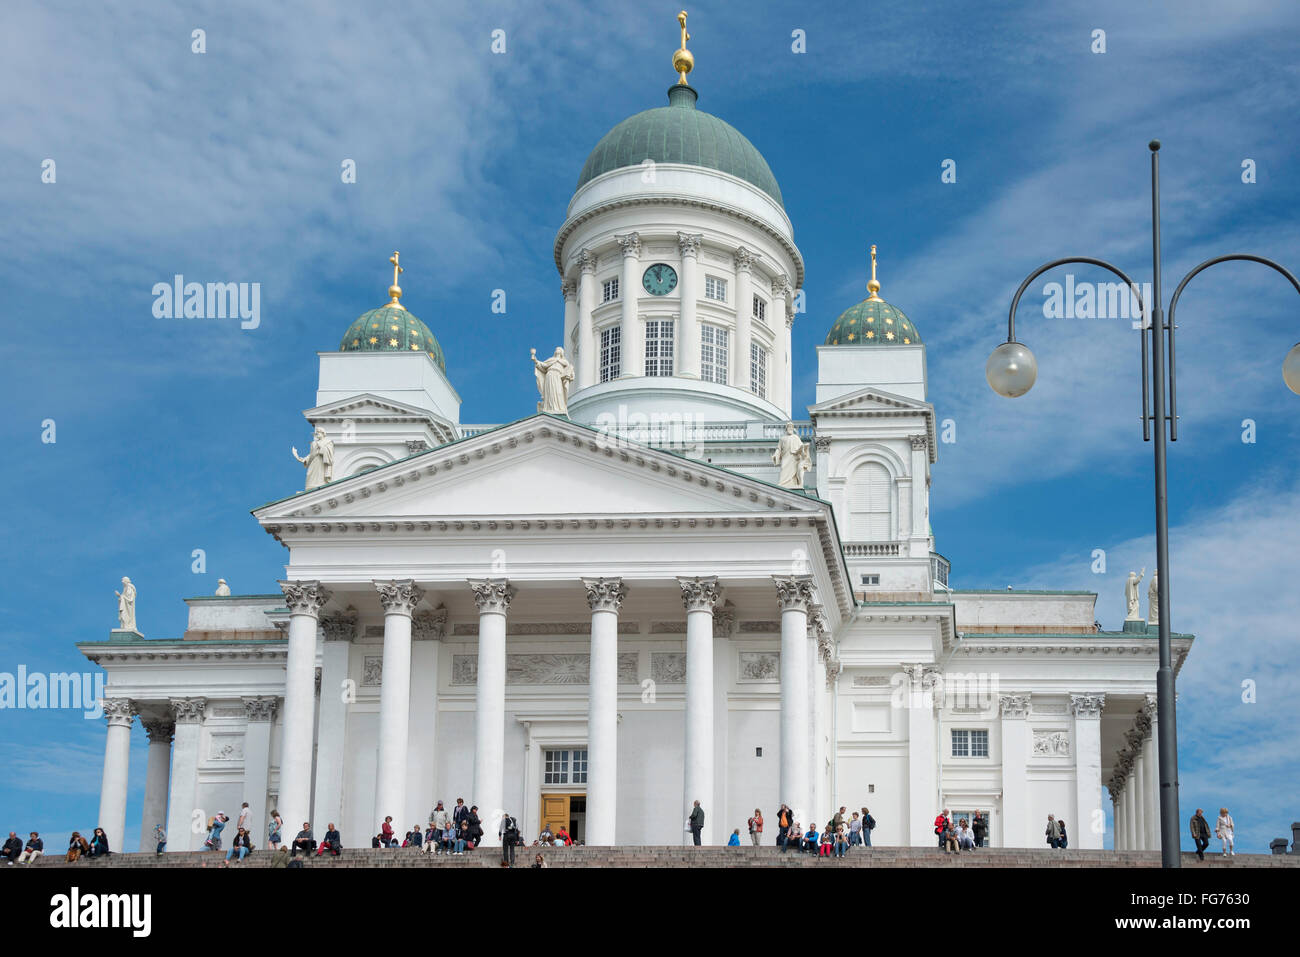 Helsinki Lutheran Cathedral, Senate Square, Helsinki, Uusimaa Region, Republic of Finland - Stock Image